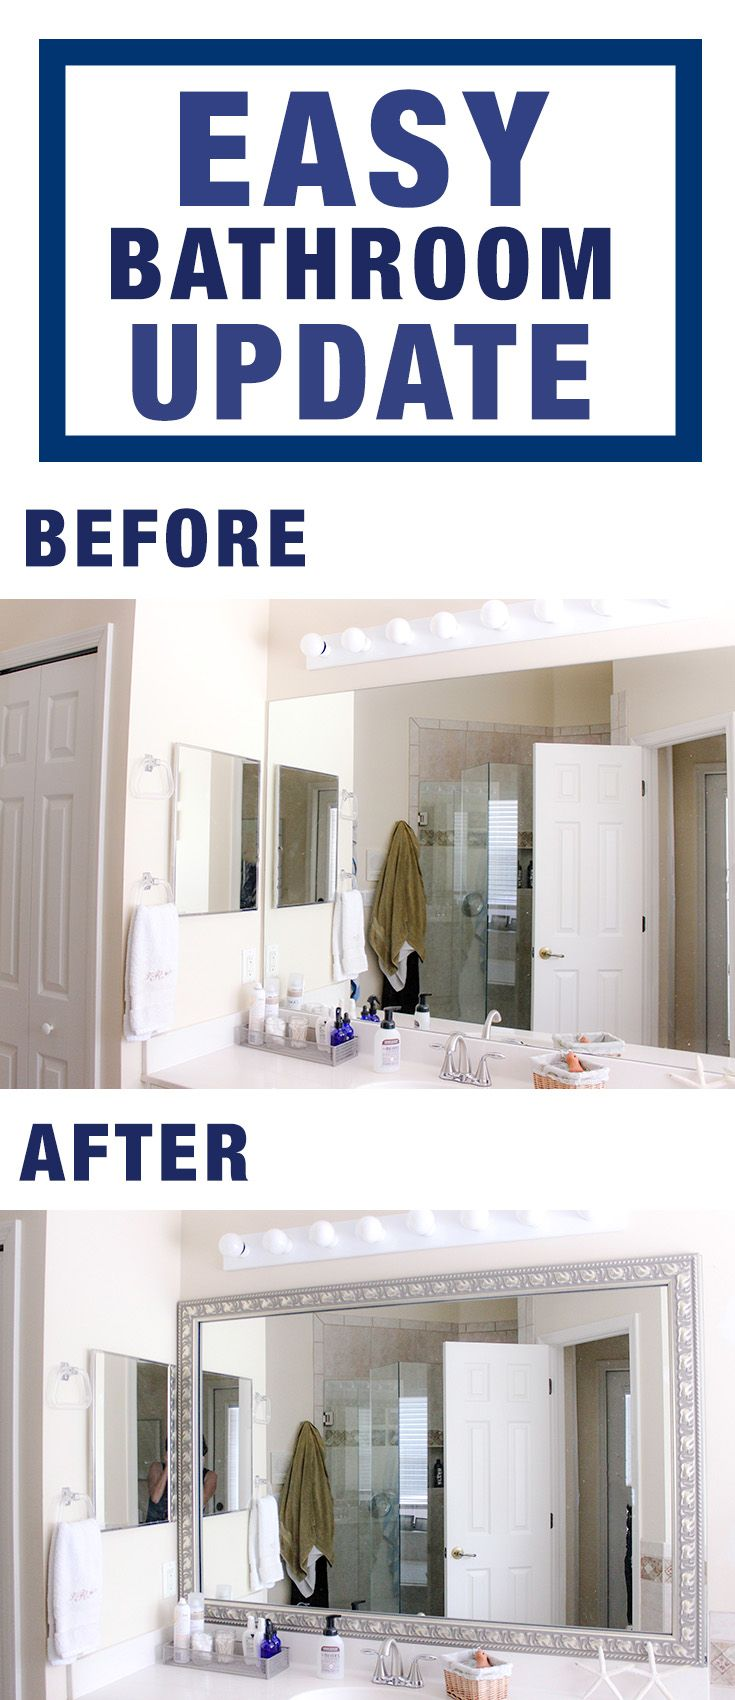 Easy Bathroom Update with DIY Mirror Frame Kit from Frame My Mirror ...